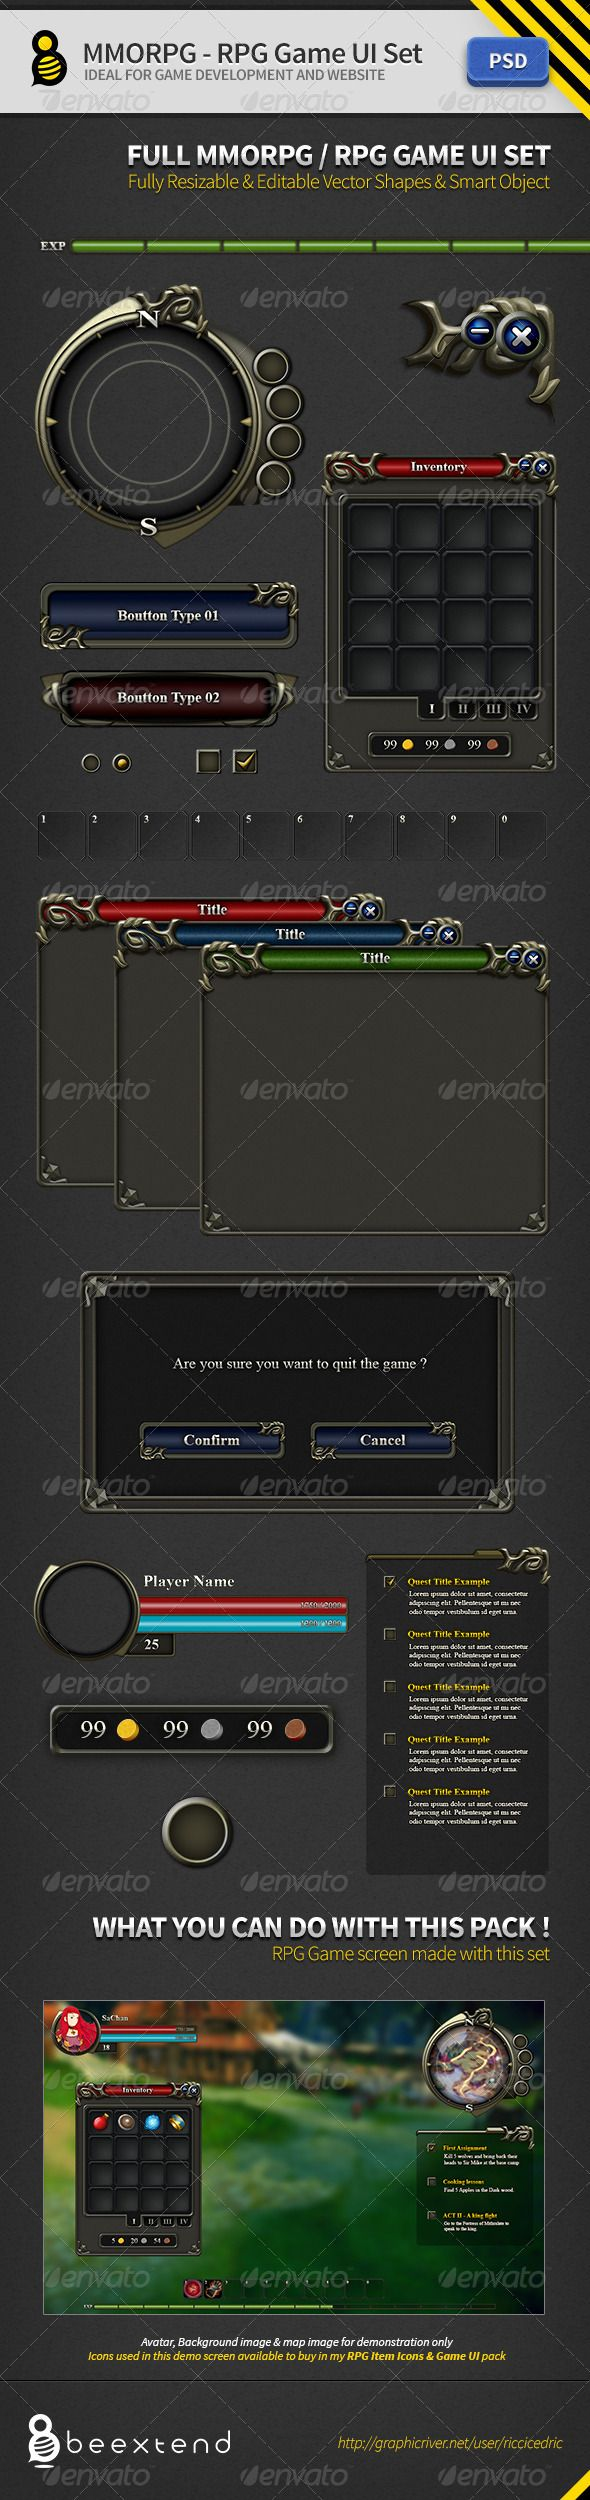 MMORPG-RPG Game UI Set - GraphicRiver Item for Sale